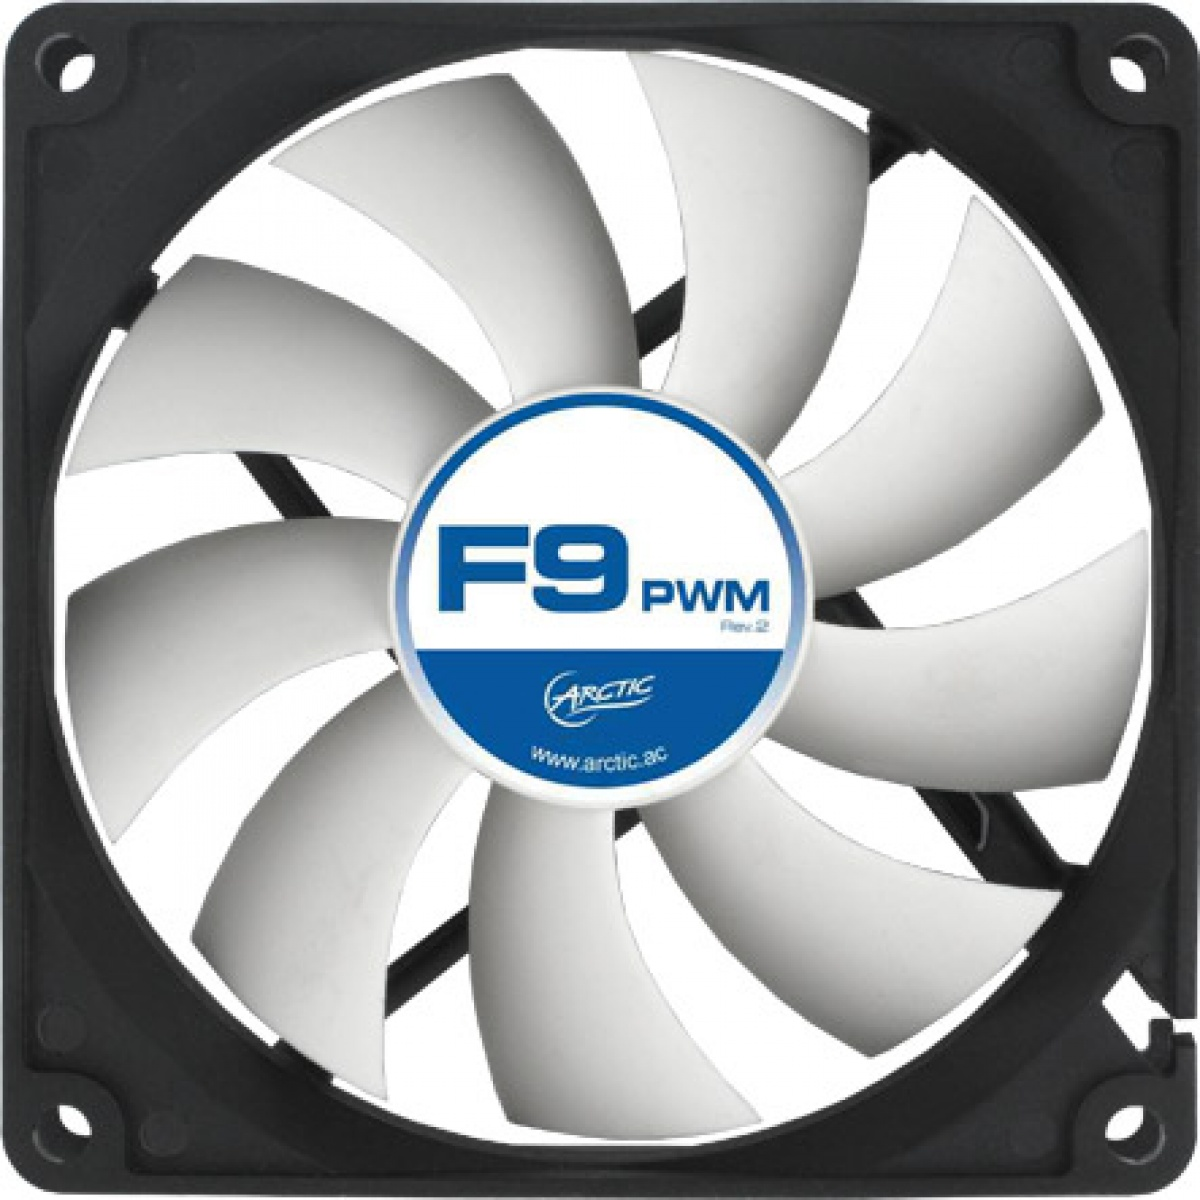 Case Fan 92 mm Arctic F9 PWM R2 thumbnail